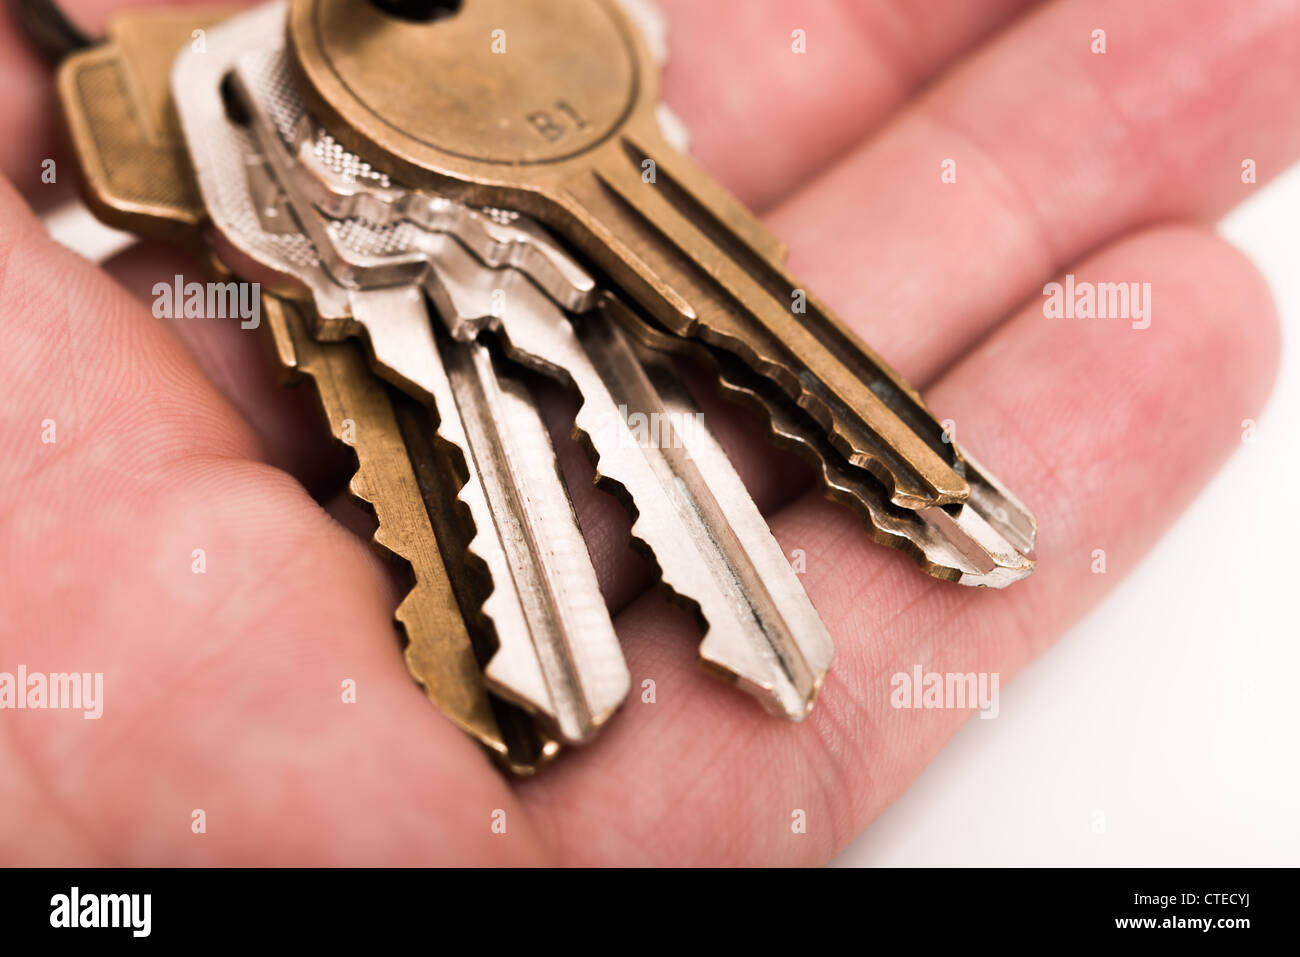 Keys in the hand Stock Photo